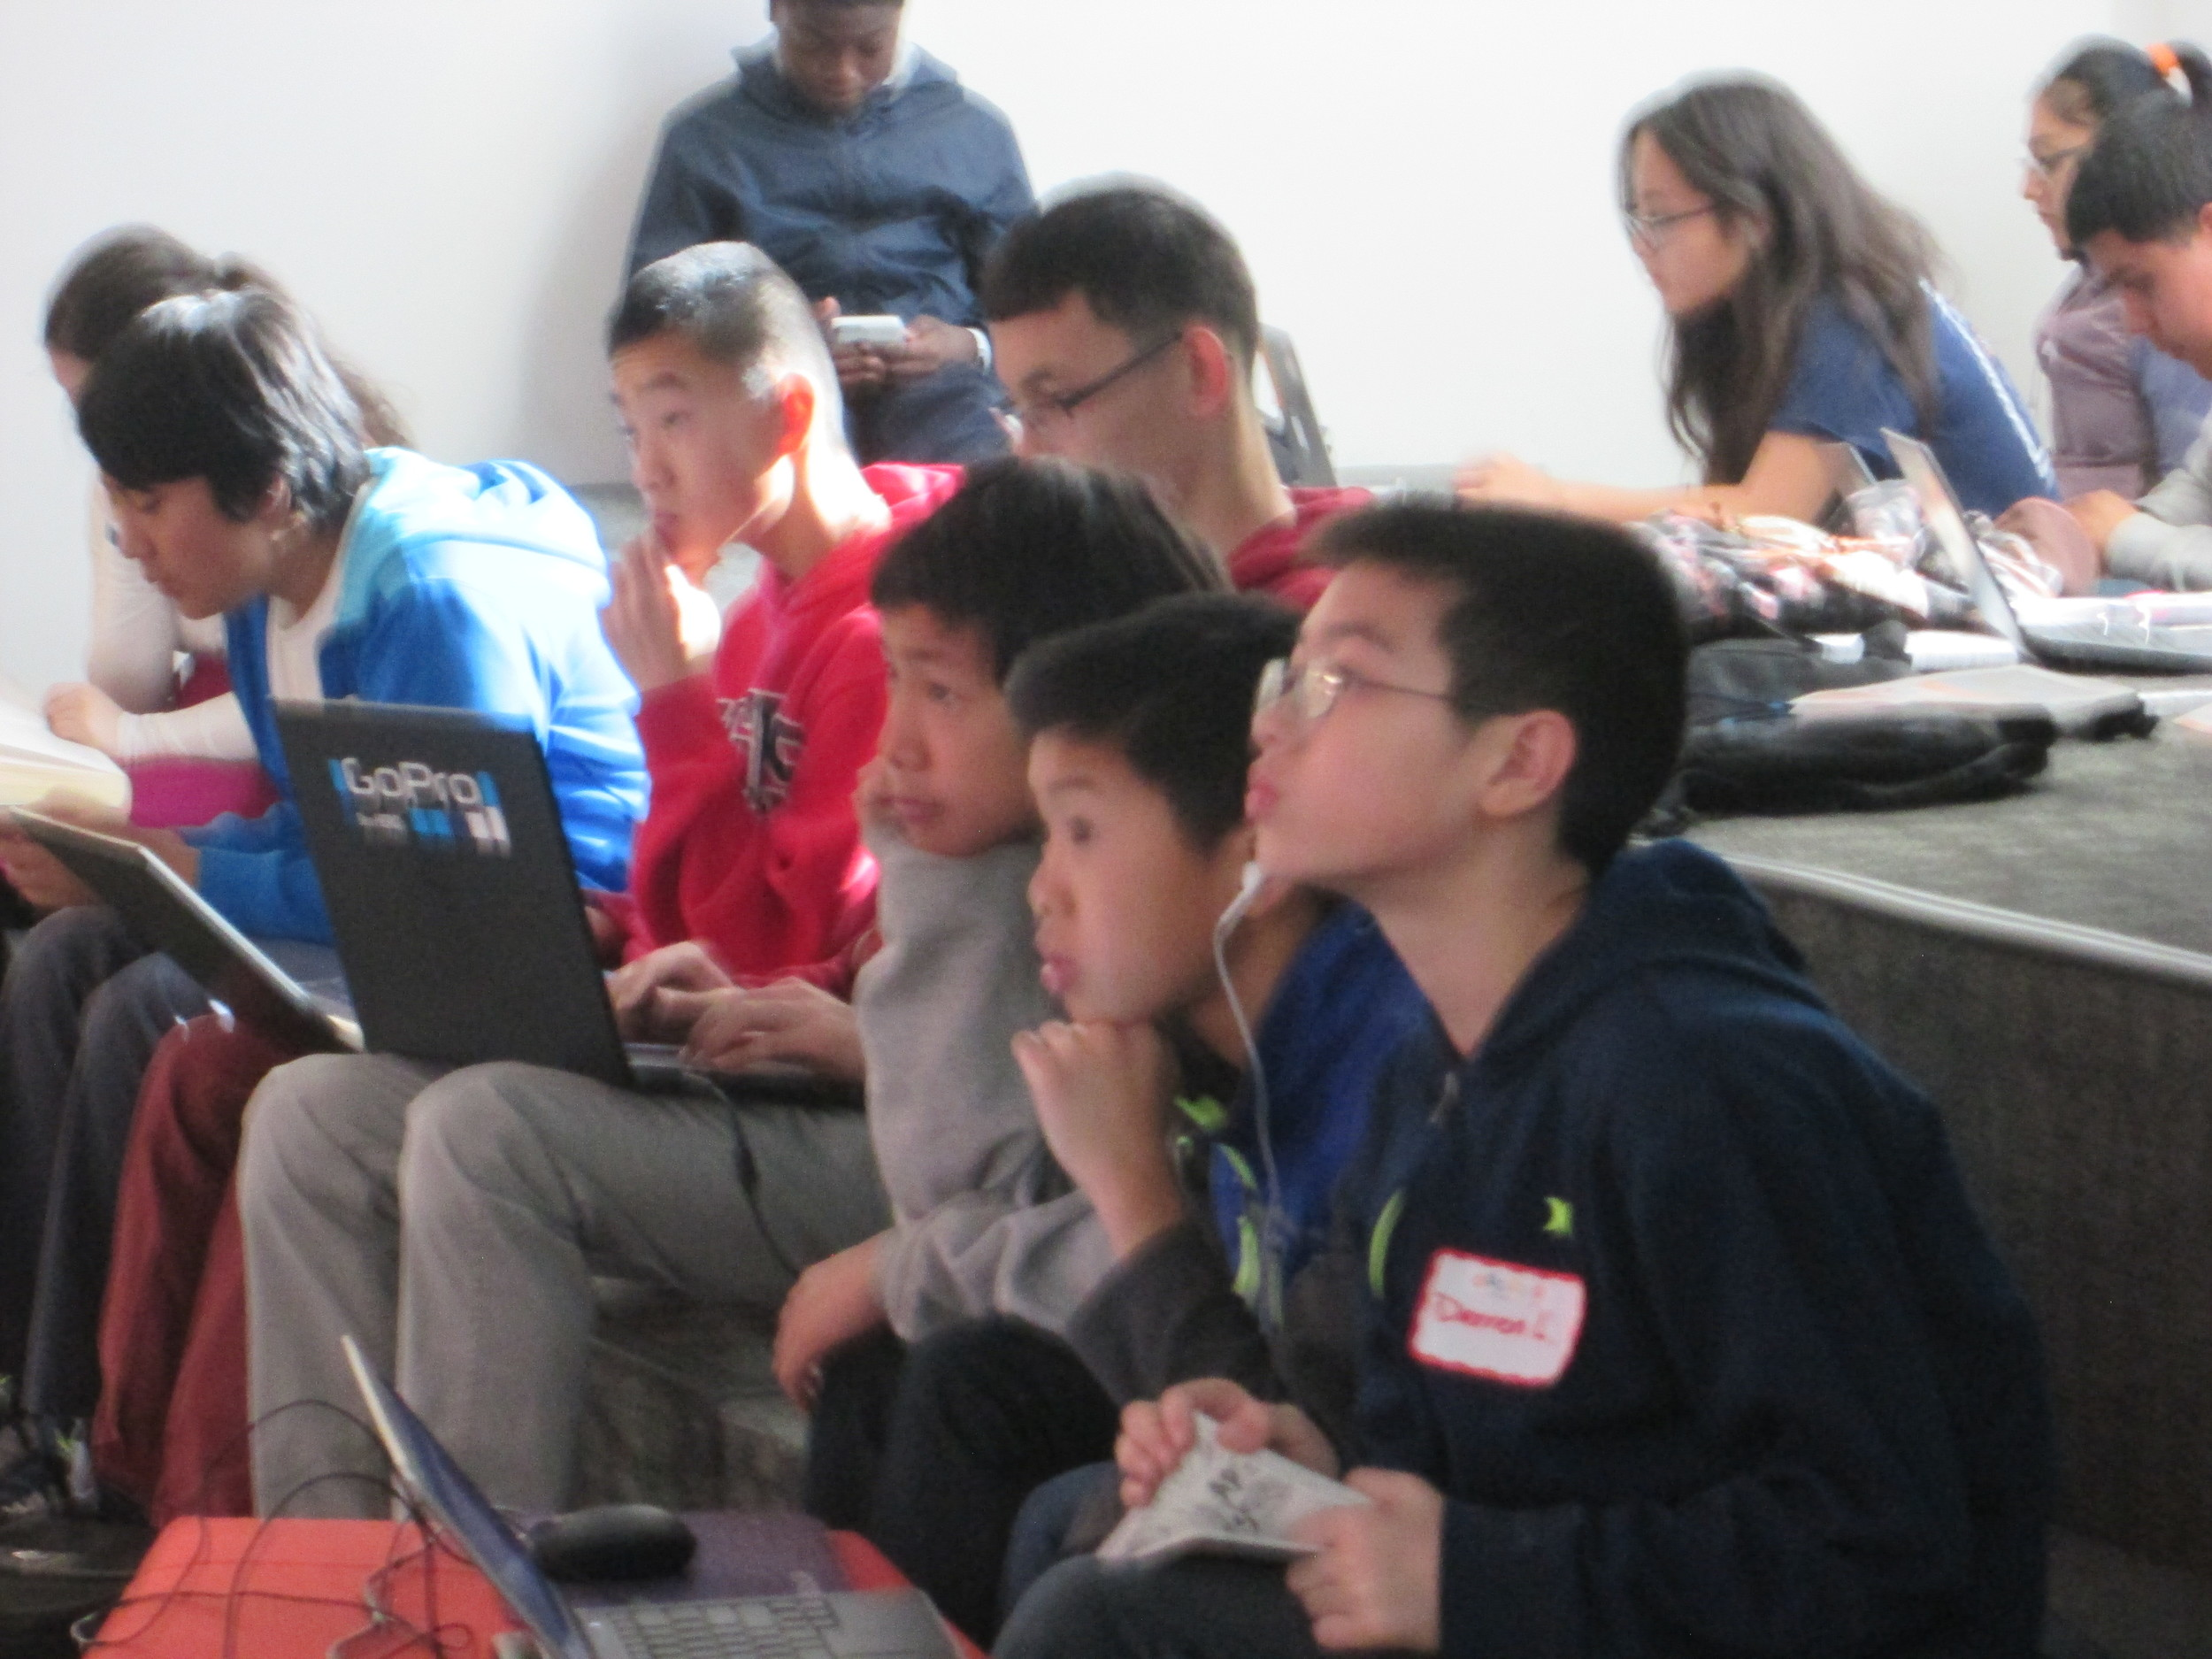 Student hackers transformed from game players to game coders